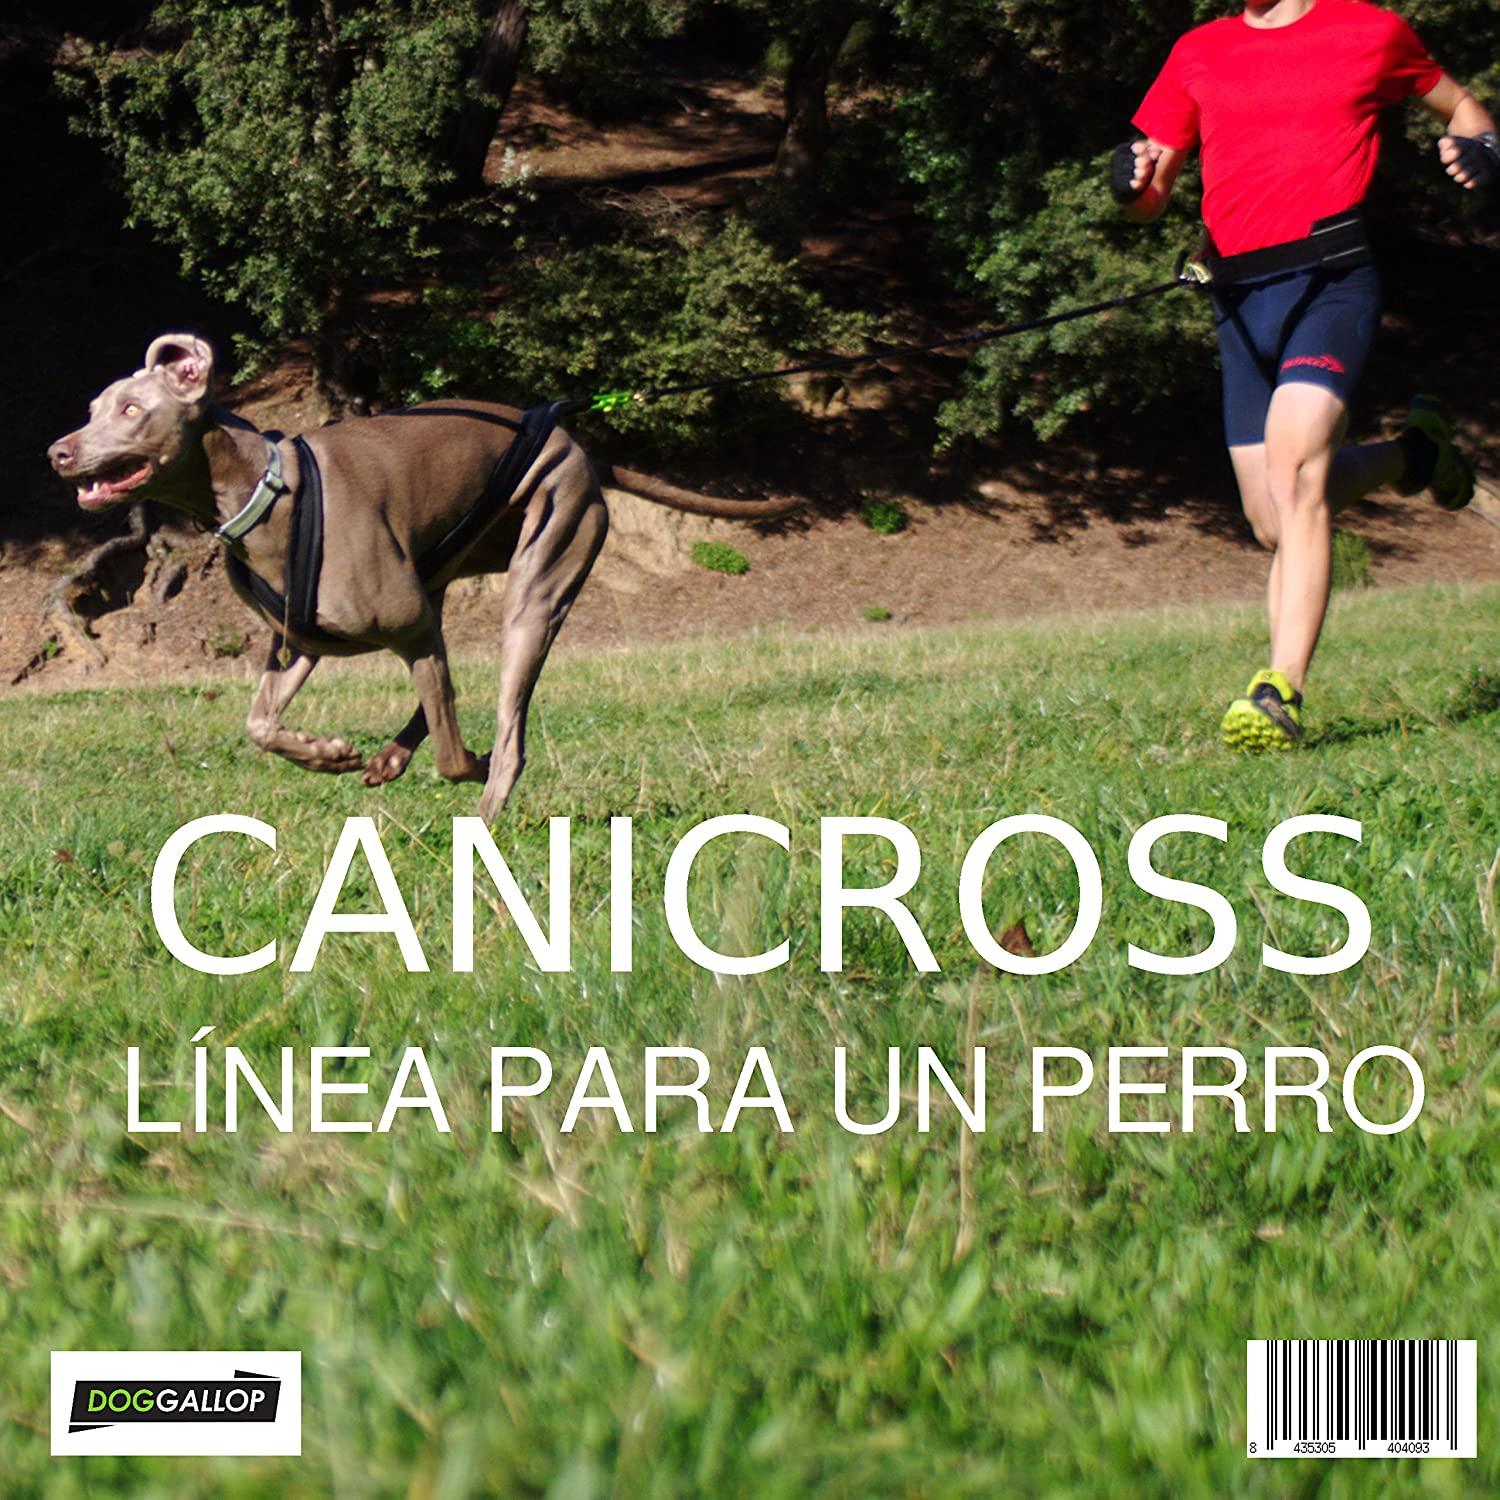 Kit Canicross (Talla 11): Amazon.es: Deportes y aire libre